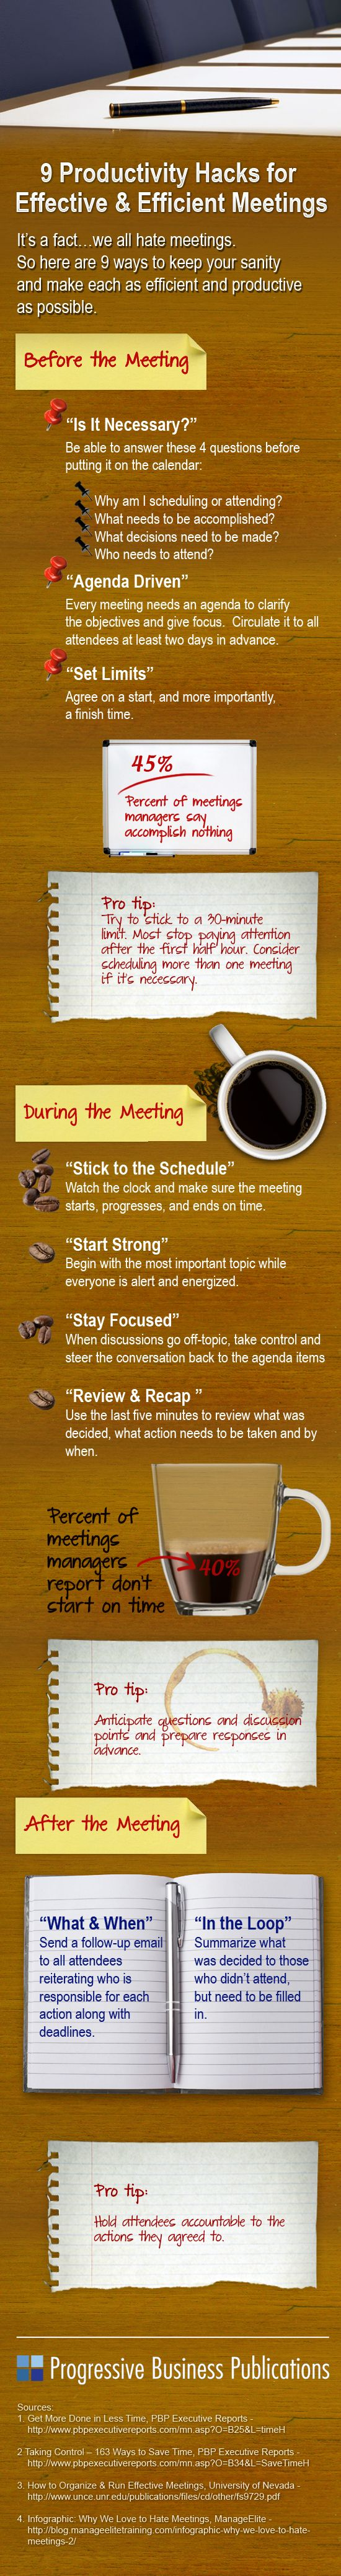 Effective and Efficient meetings from HR Morning